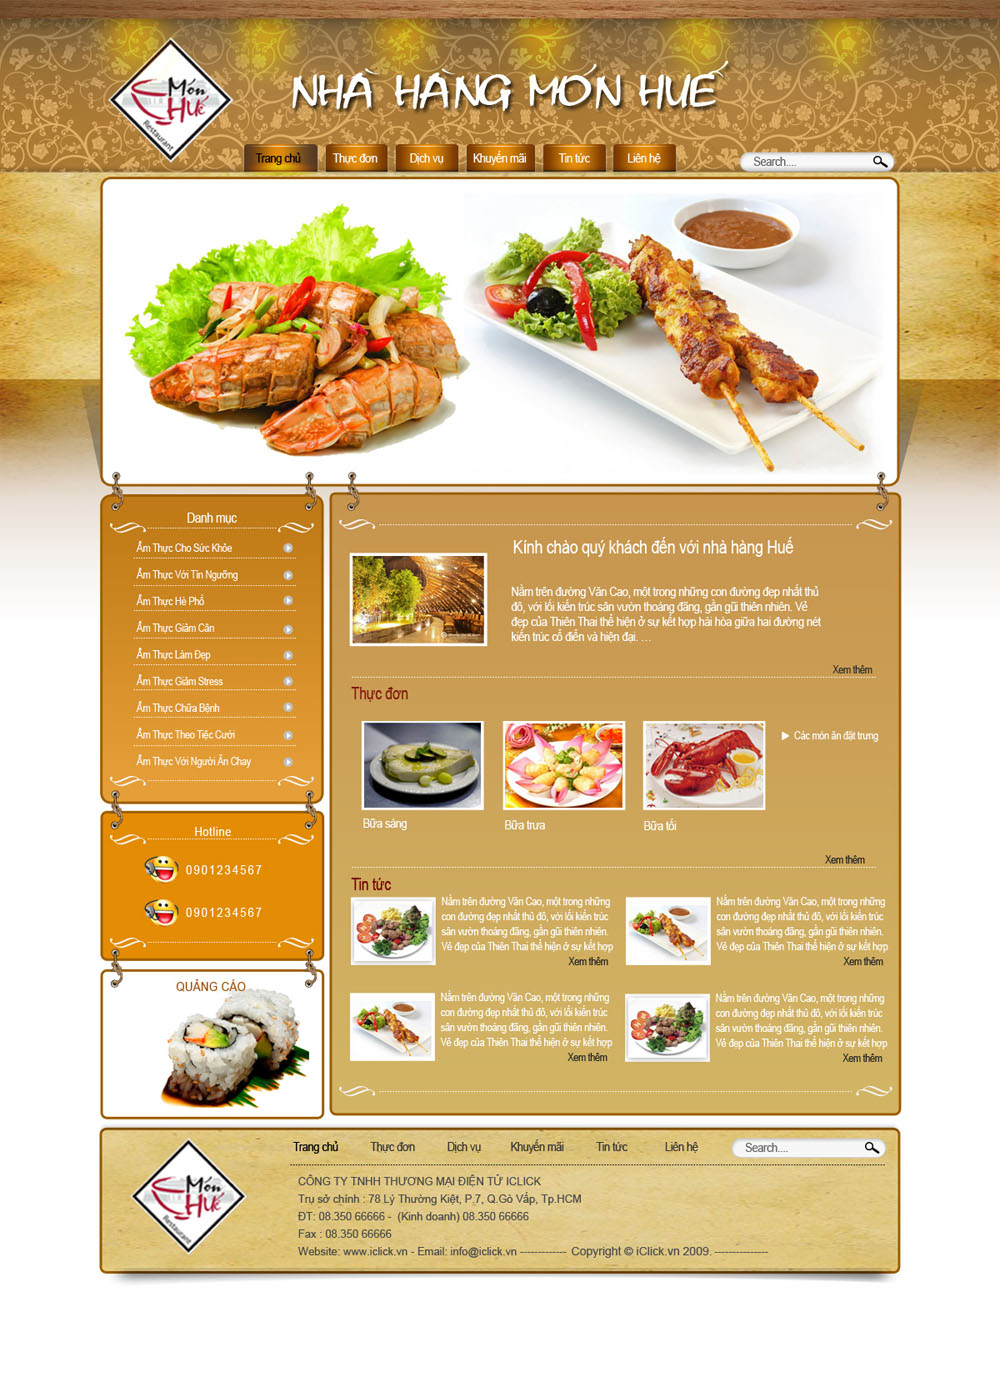 I will give you reall web design html and css combiti...